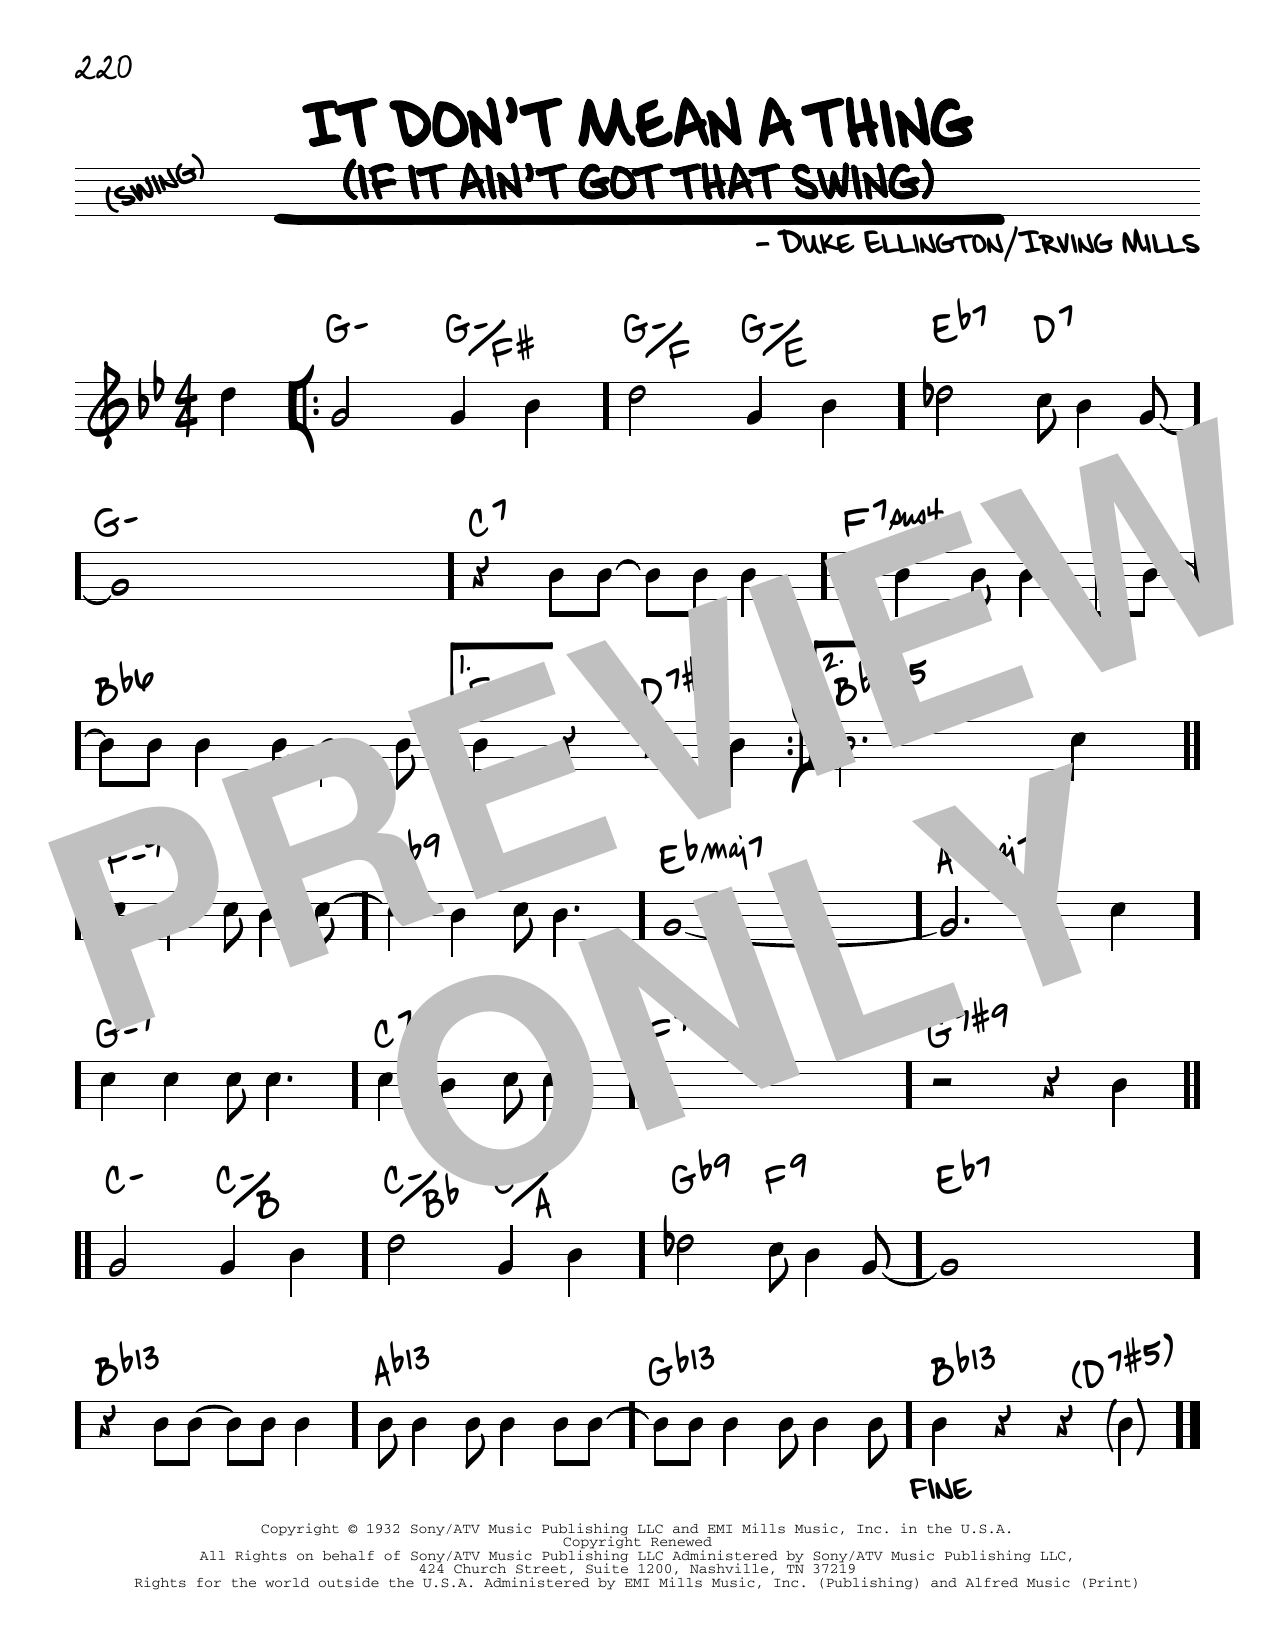 Duke Ellington It Don't Mean A Thing (If It Ain't Got That Swing) [Reharmonized version] (arr. Jack Grassel) sheet music notes printable PDF score